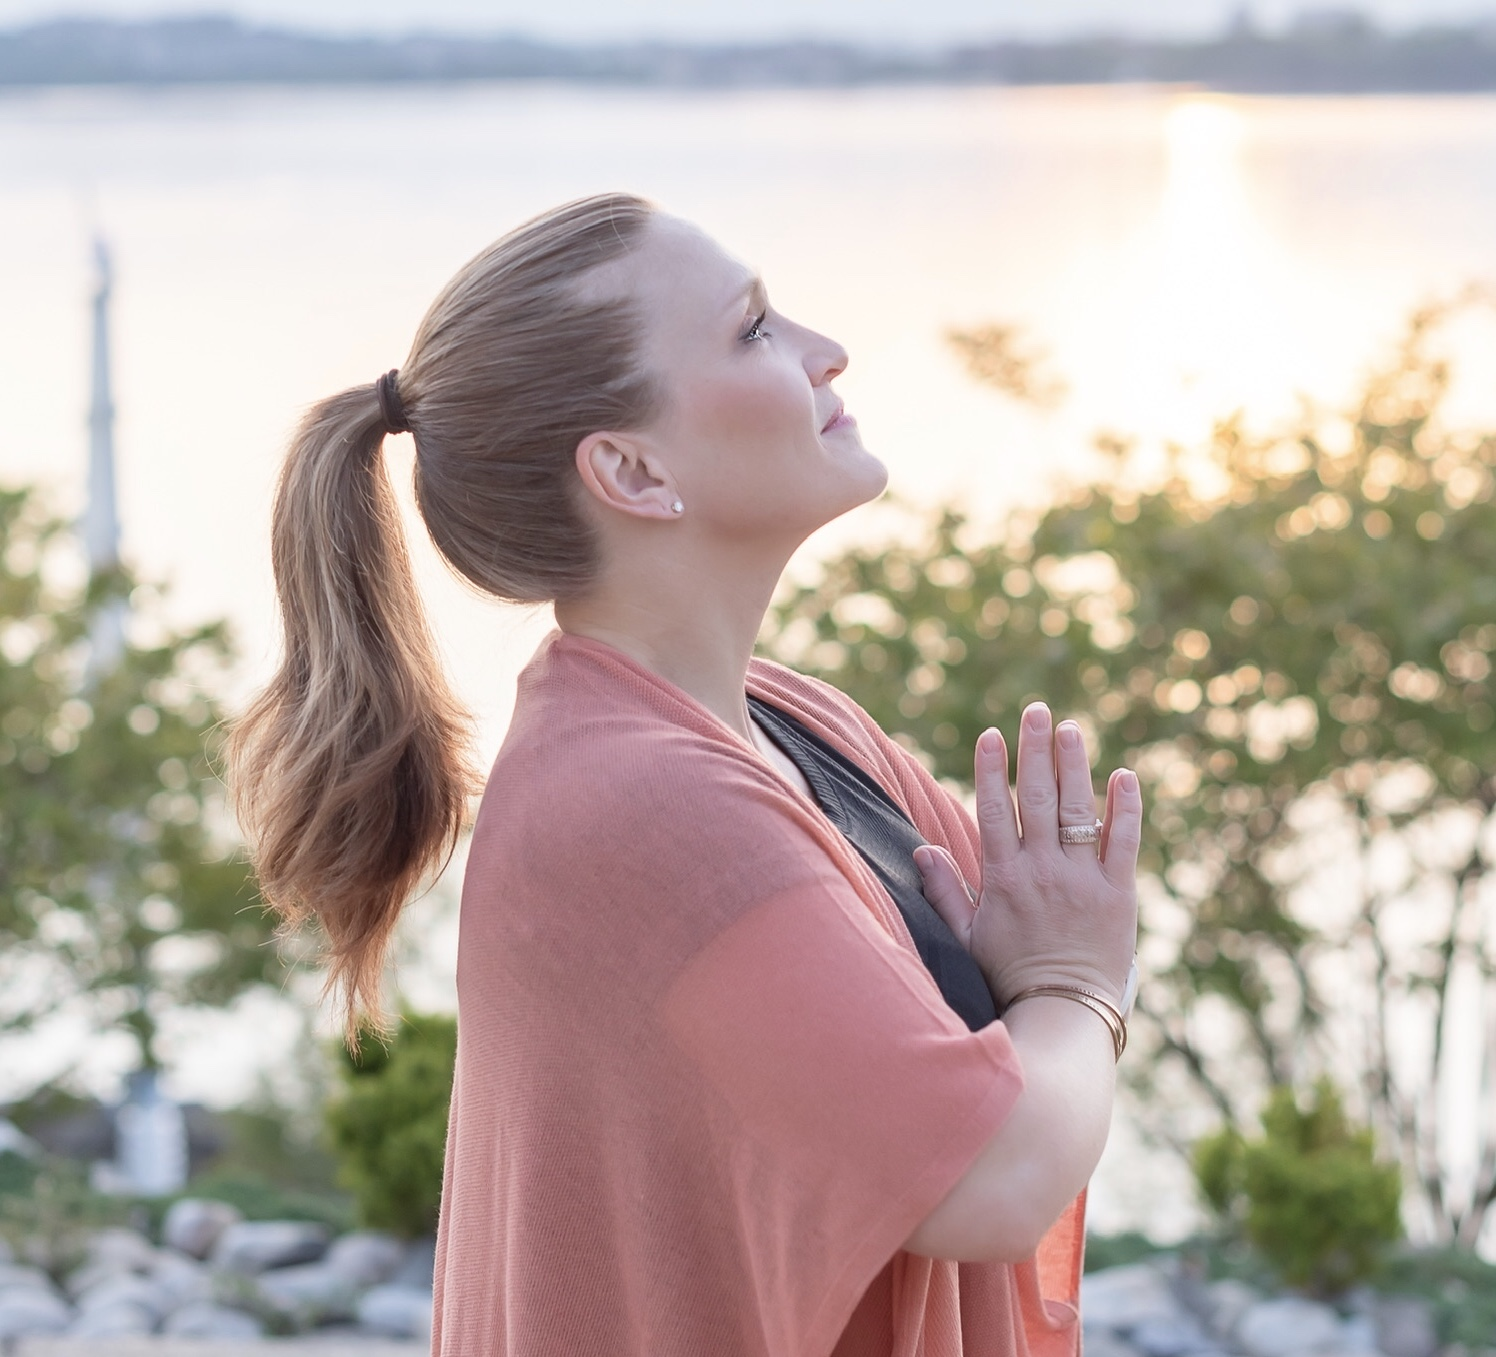 side view of a redhead with a ponytail, hands in pray, and looking up